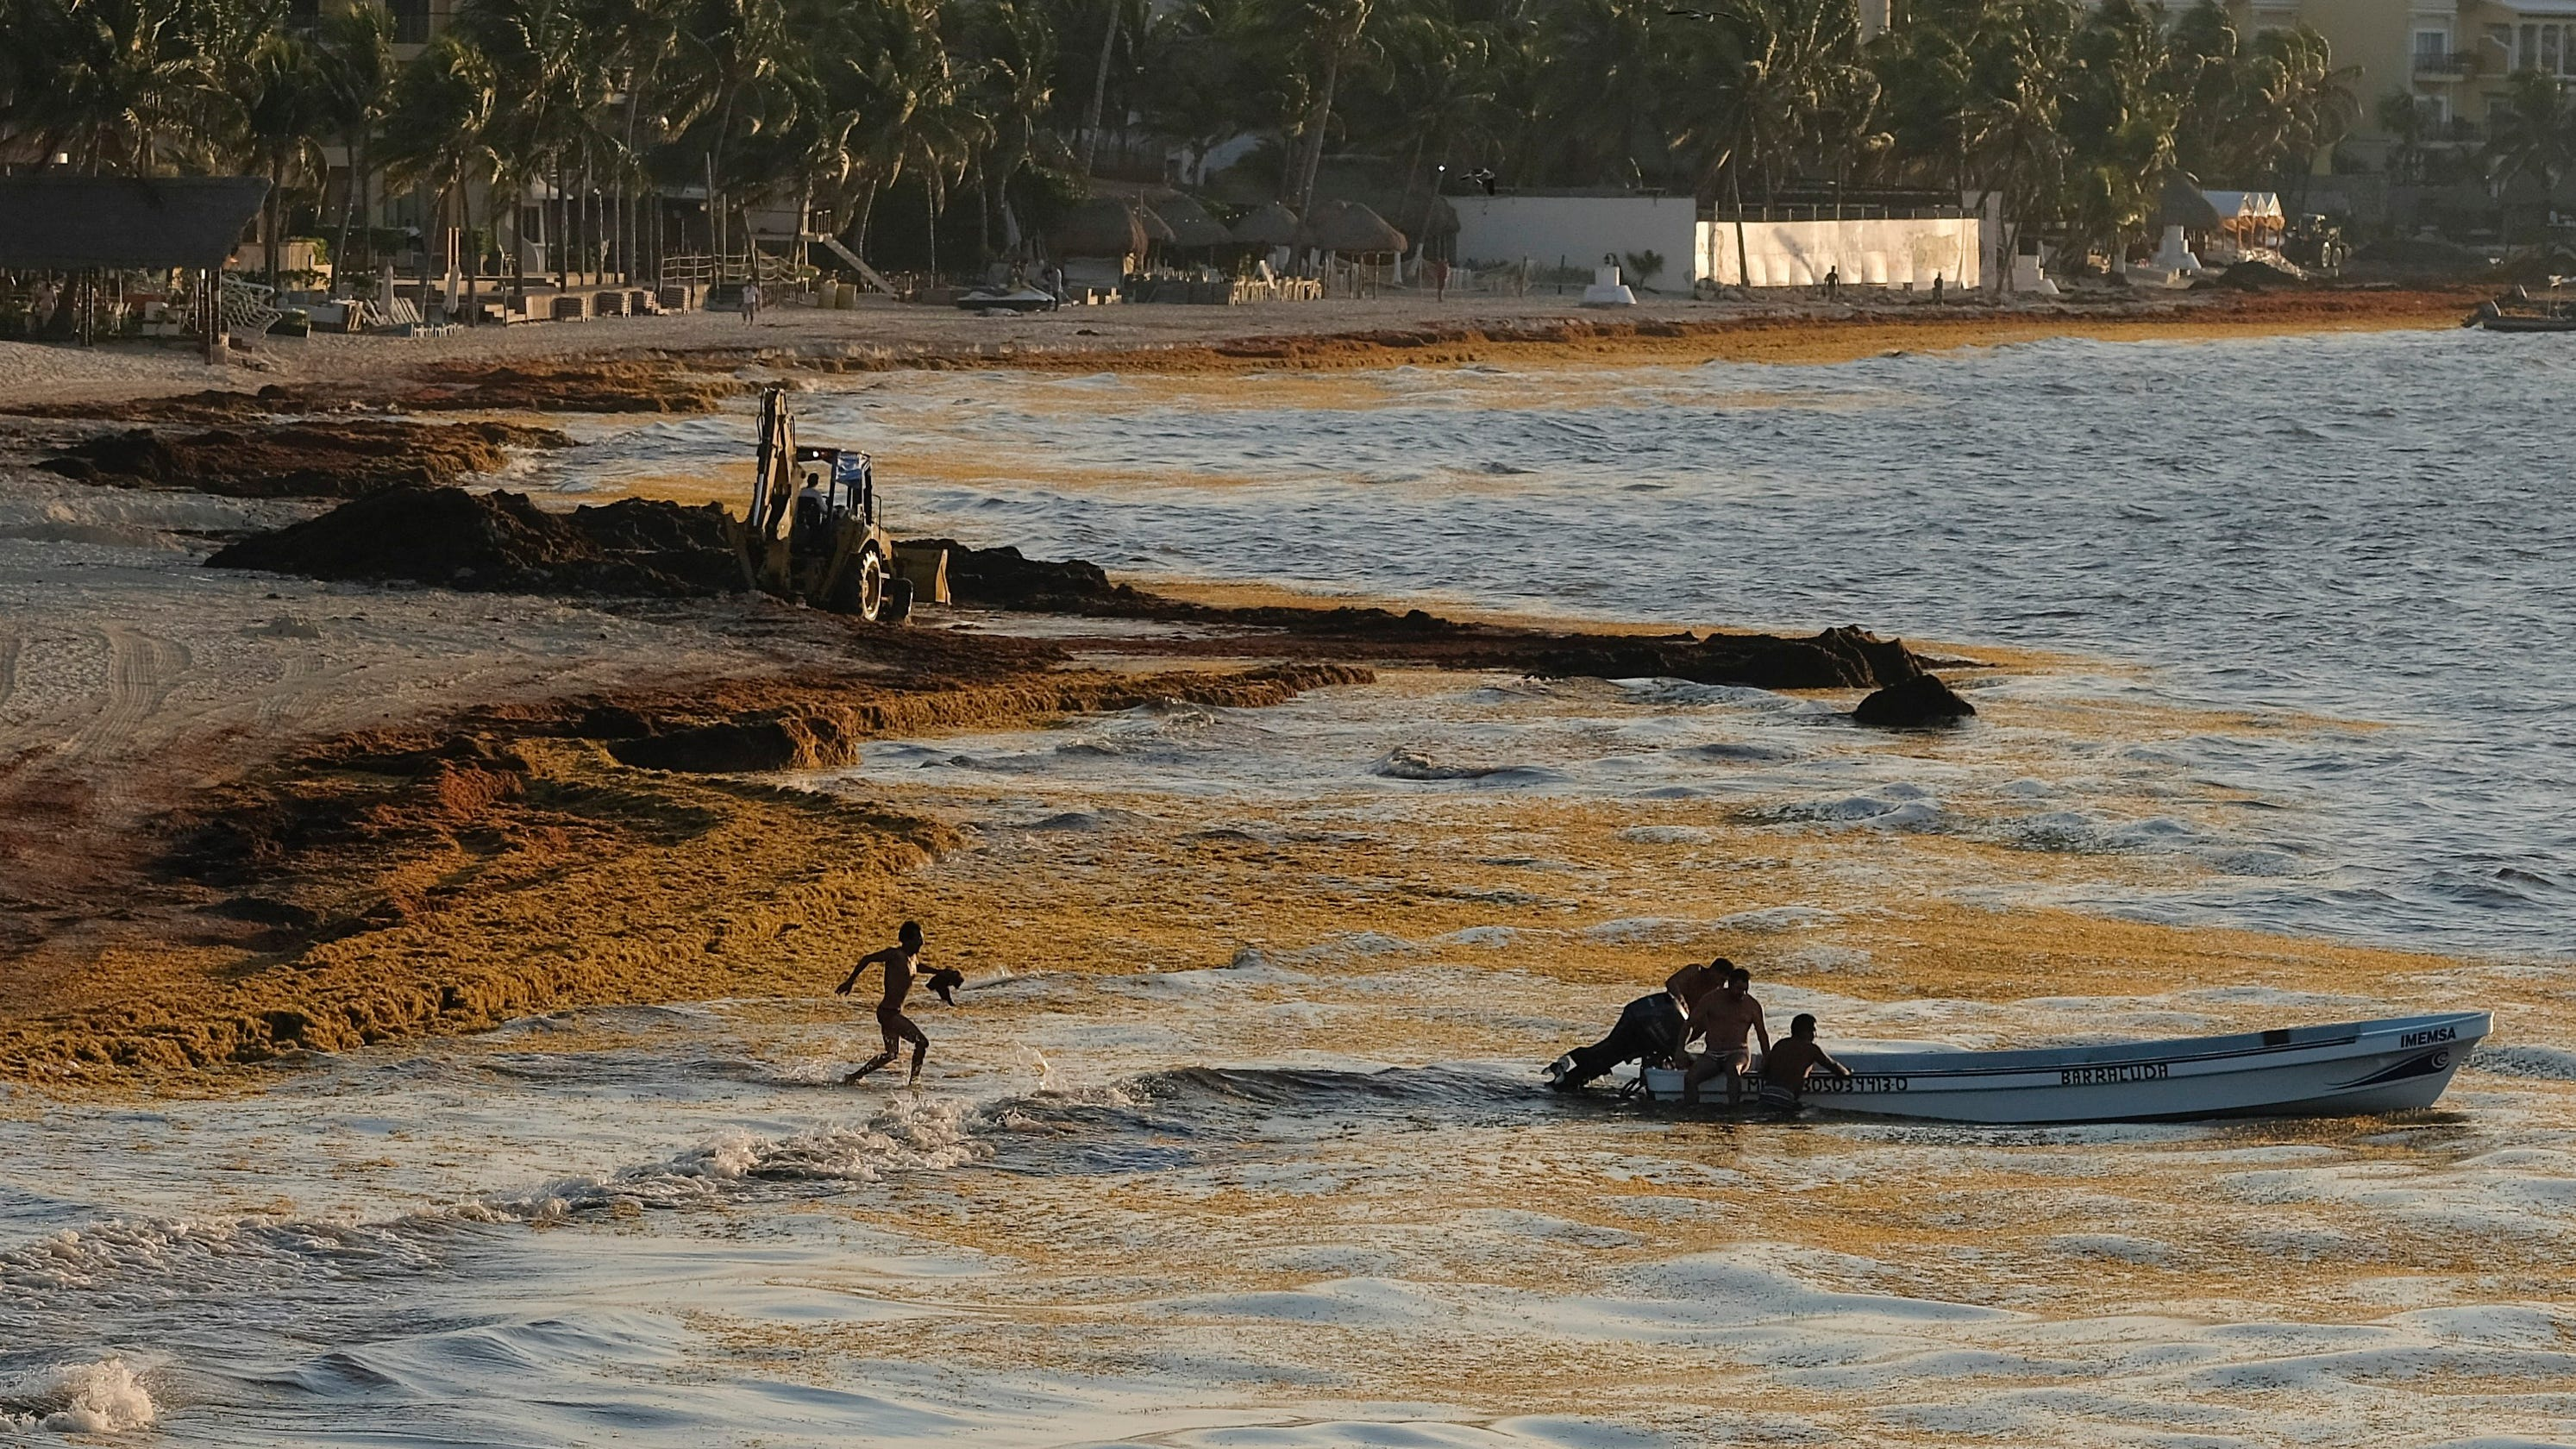 Mexico beaches: Country struggles to solve seaweed invasion